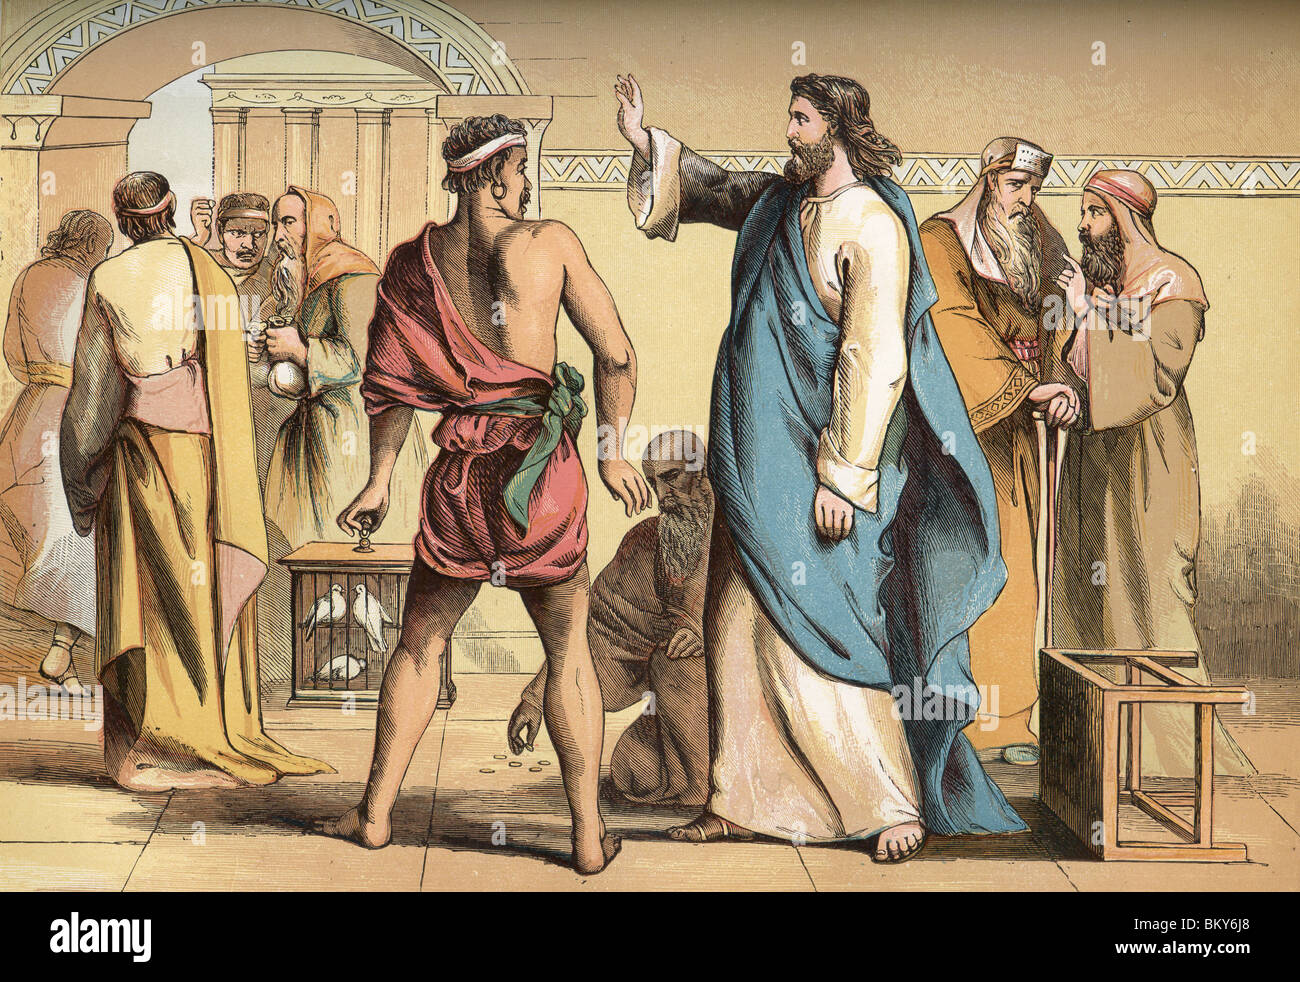 The Expulsion from the Temple - Stock Image